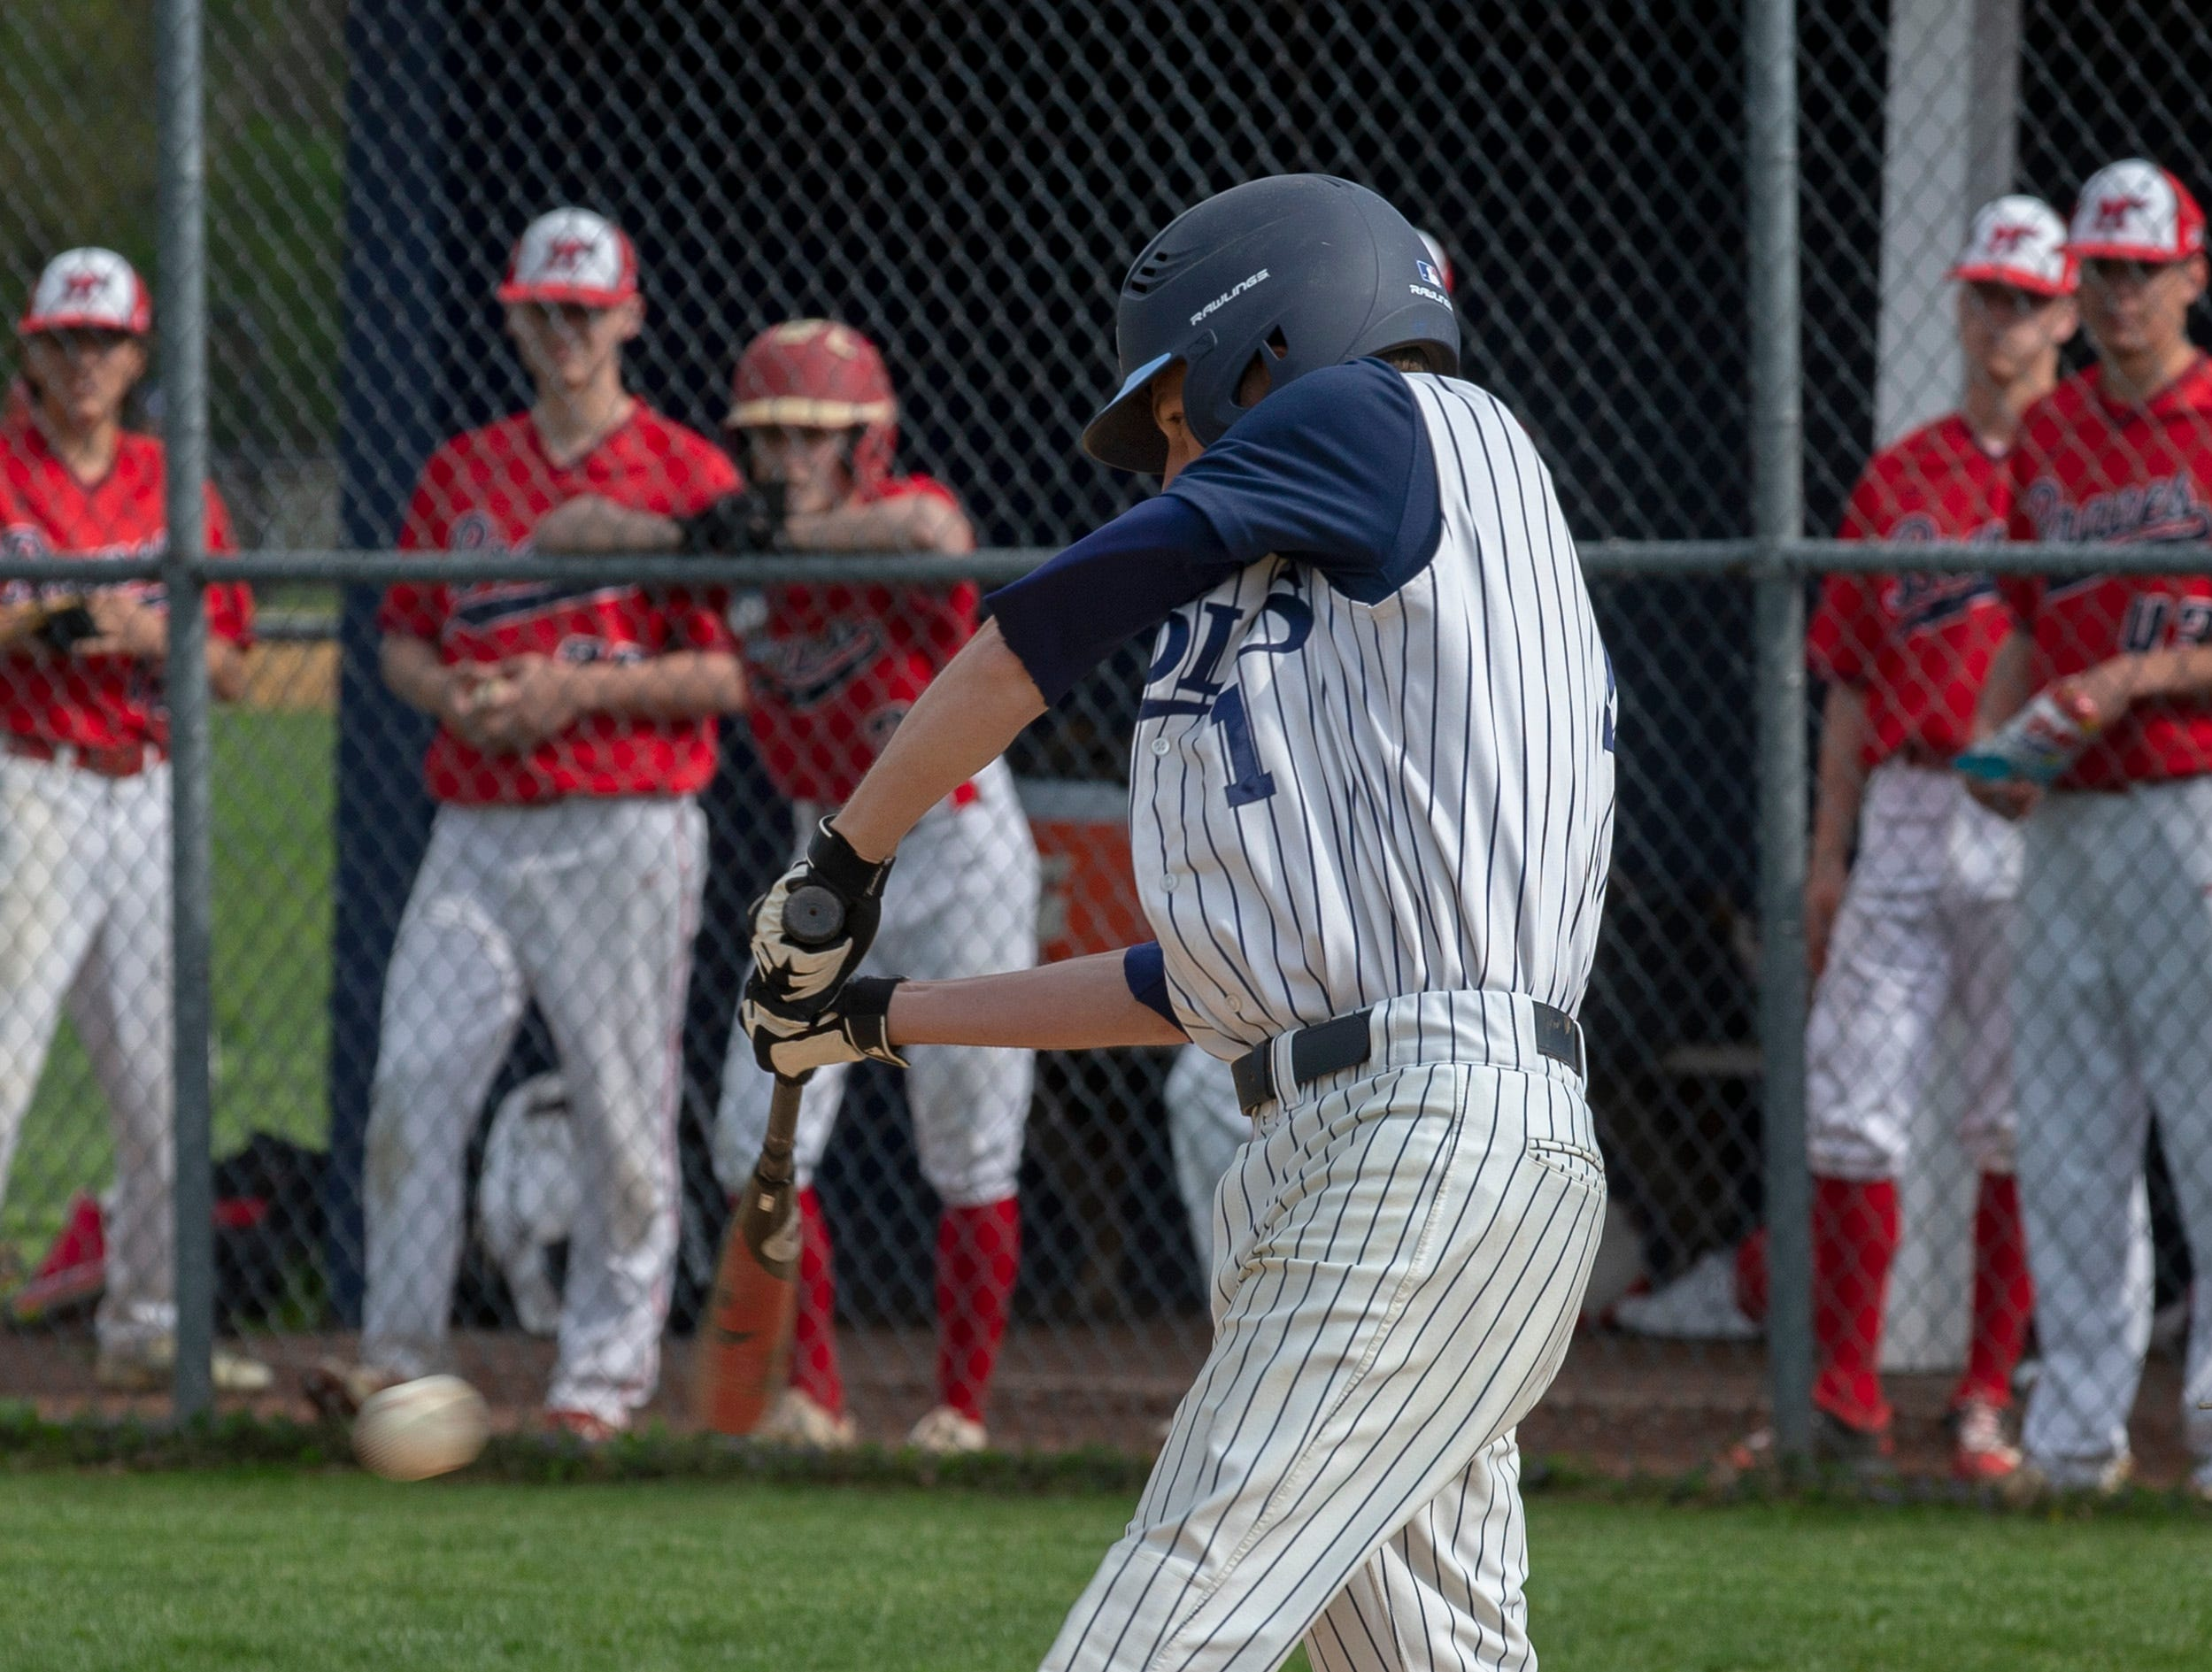 CBA's Anthony Clelestre drives in Manalapan baseball vs Christian Brothers Academy in Middletown NJ. On May 2, 2019.